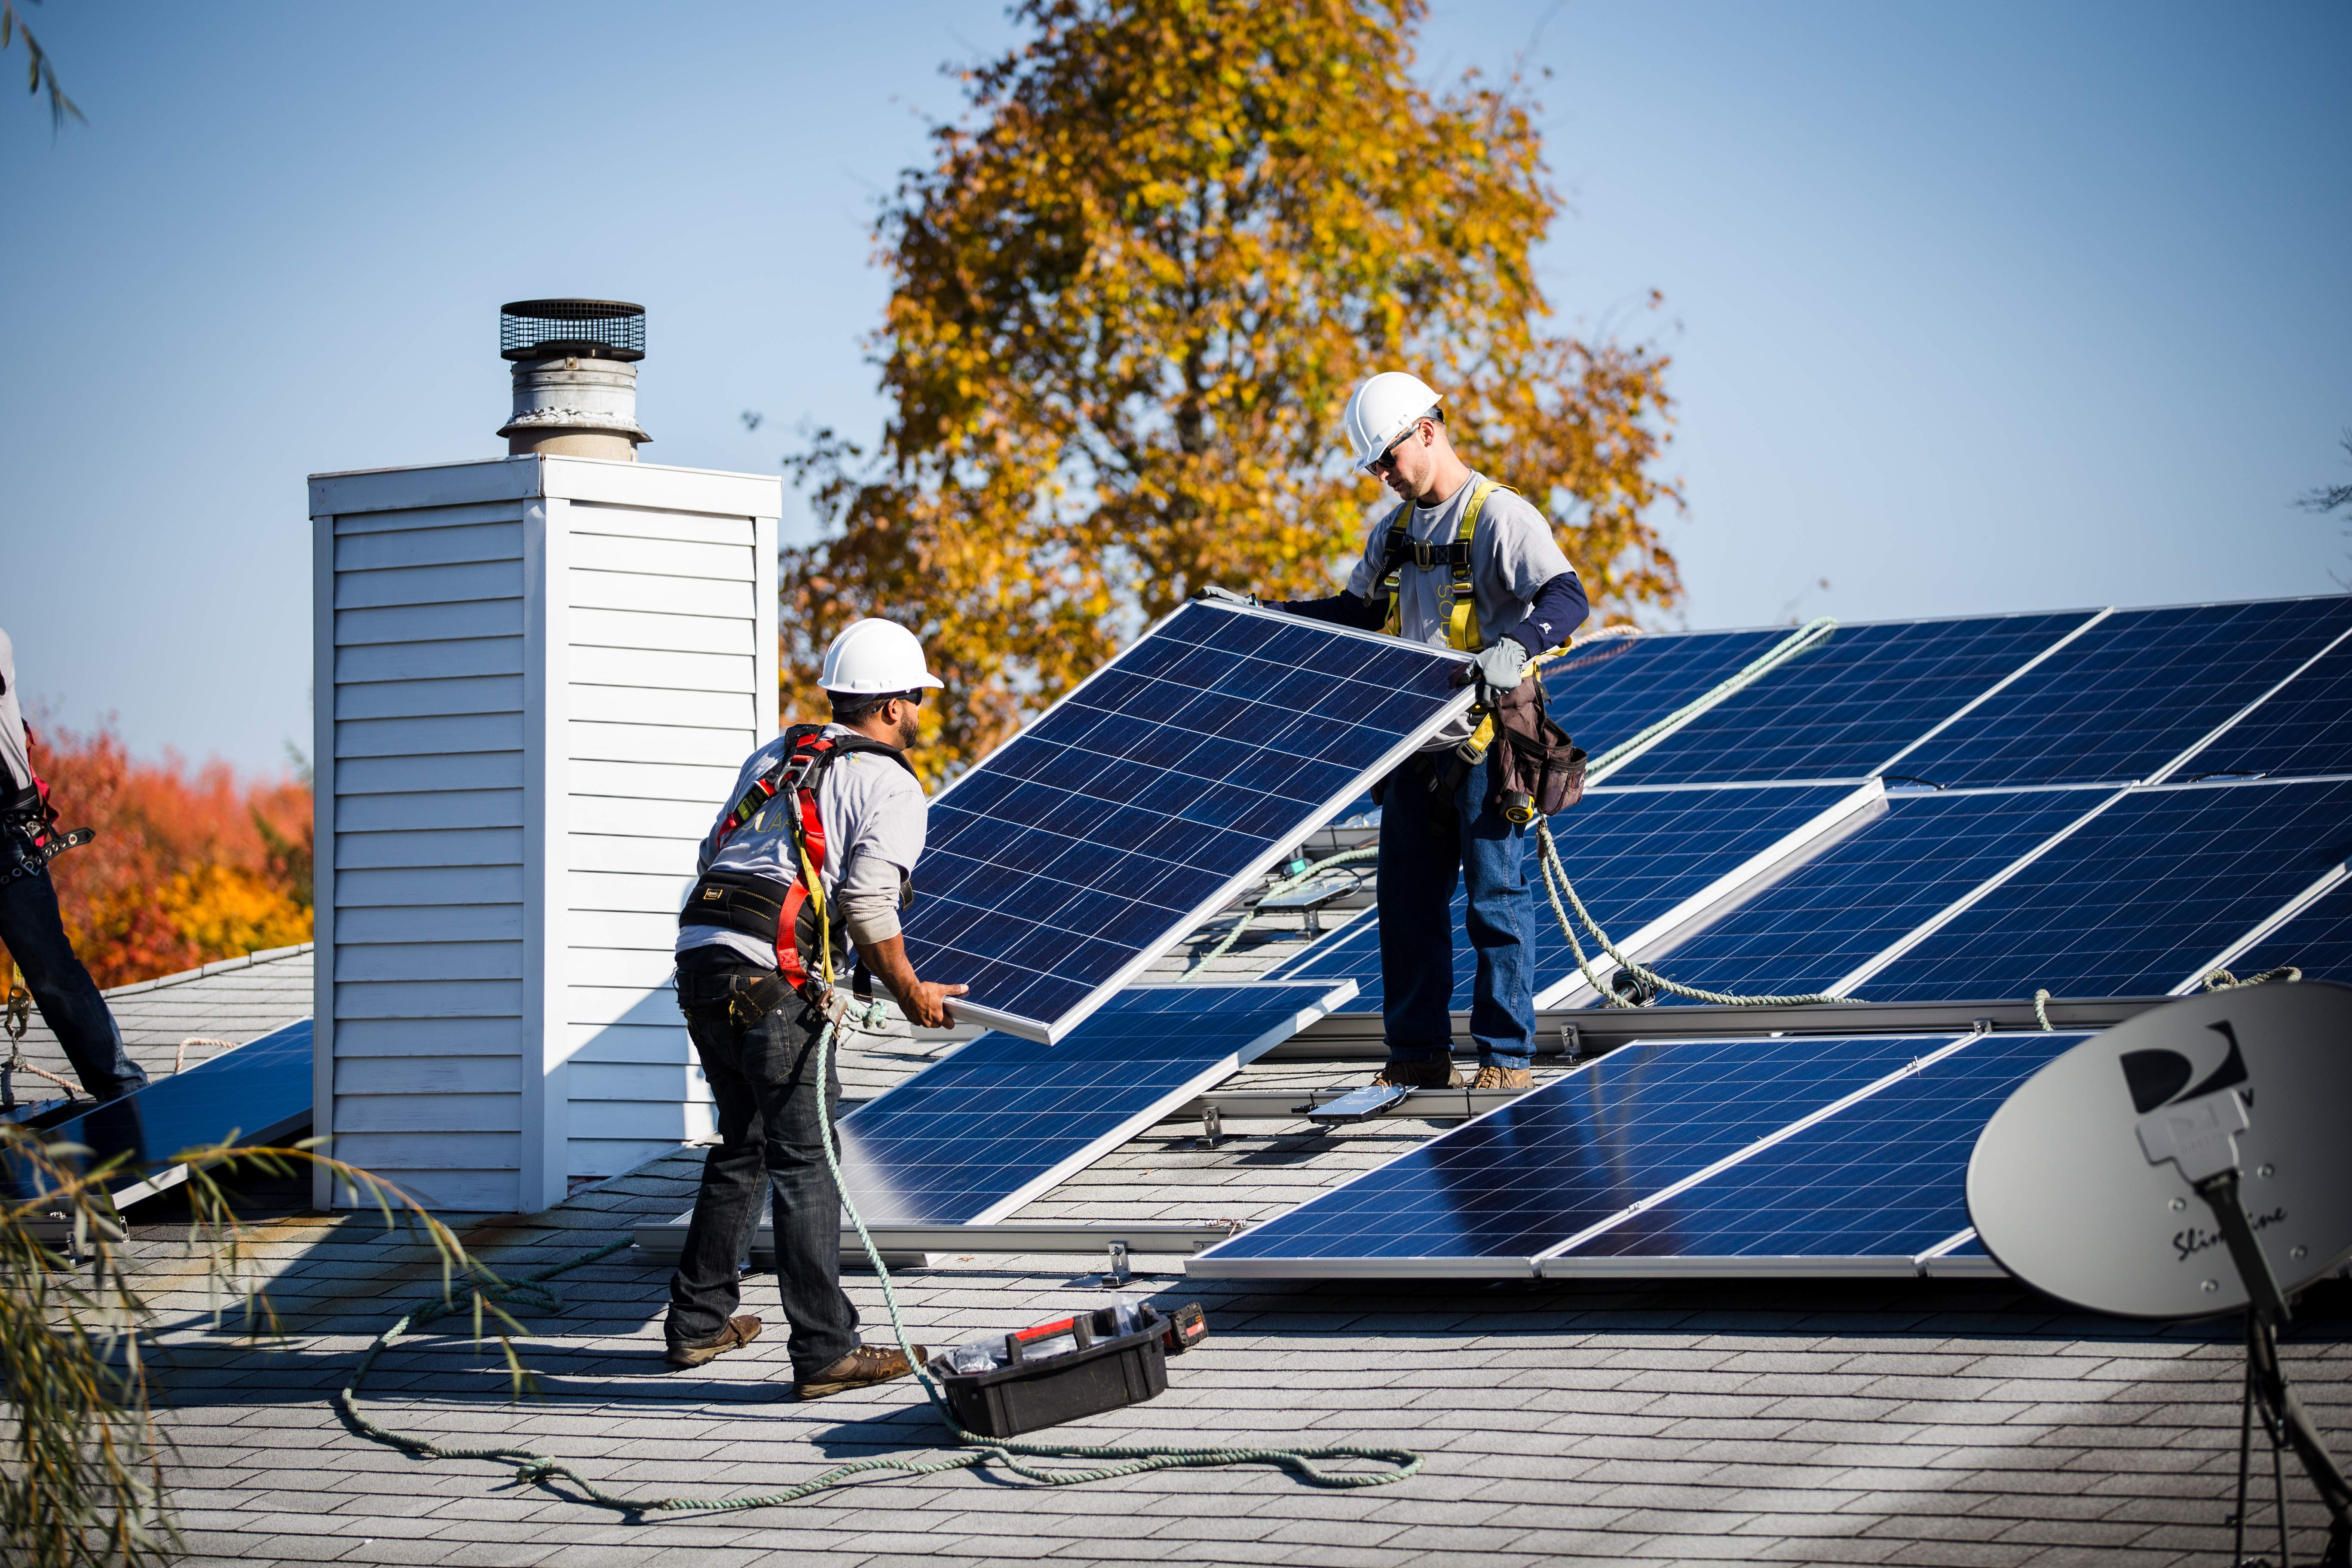 Installers work on an NRG residential solar project in Marlboro.